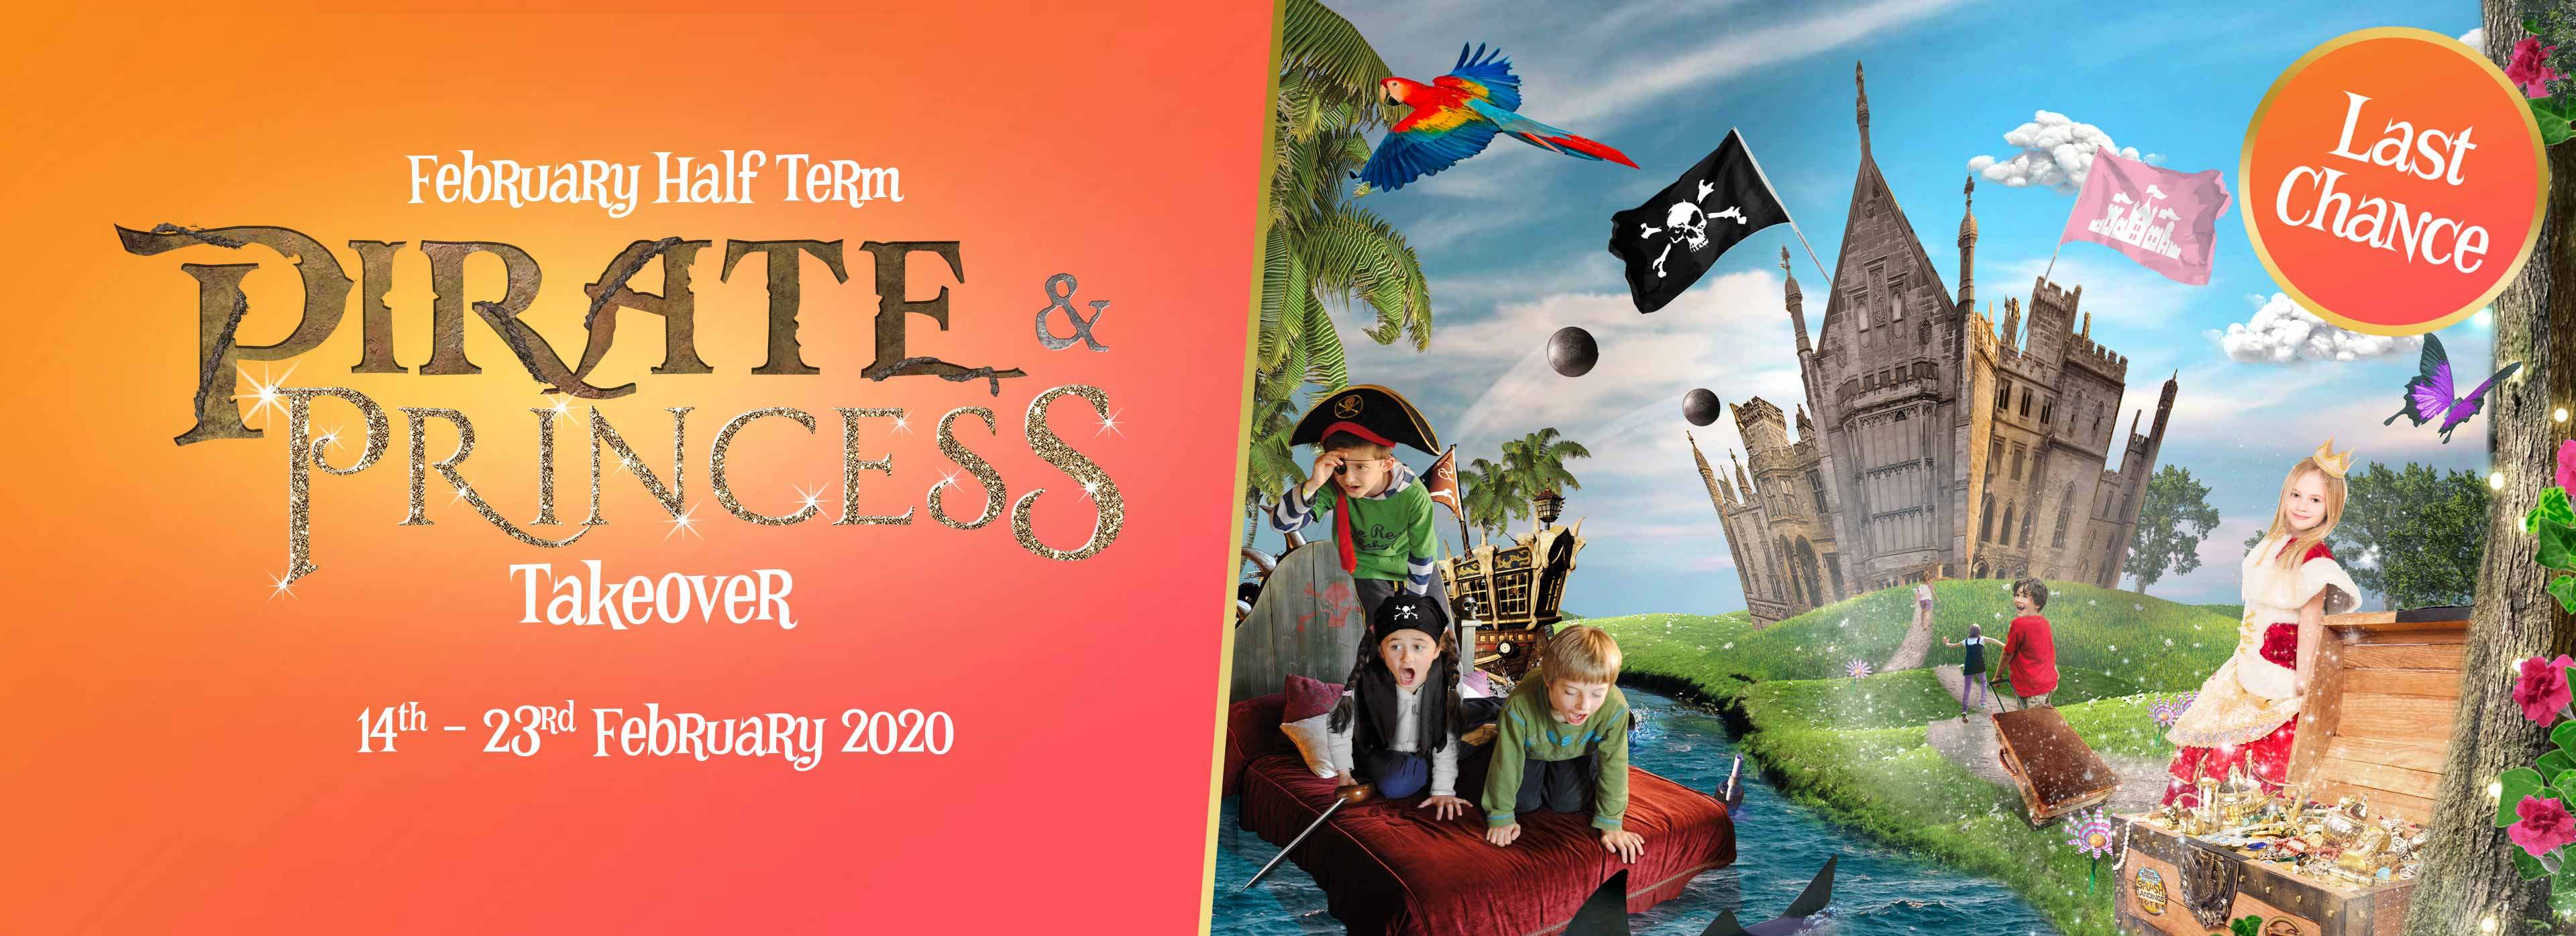 February Half Term 2020 at Alton Towers Resort